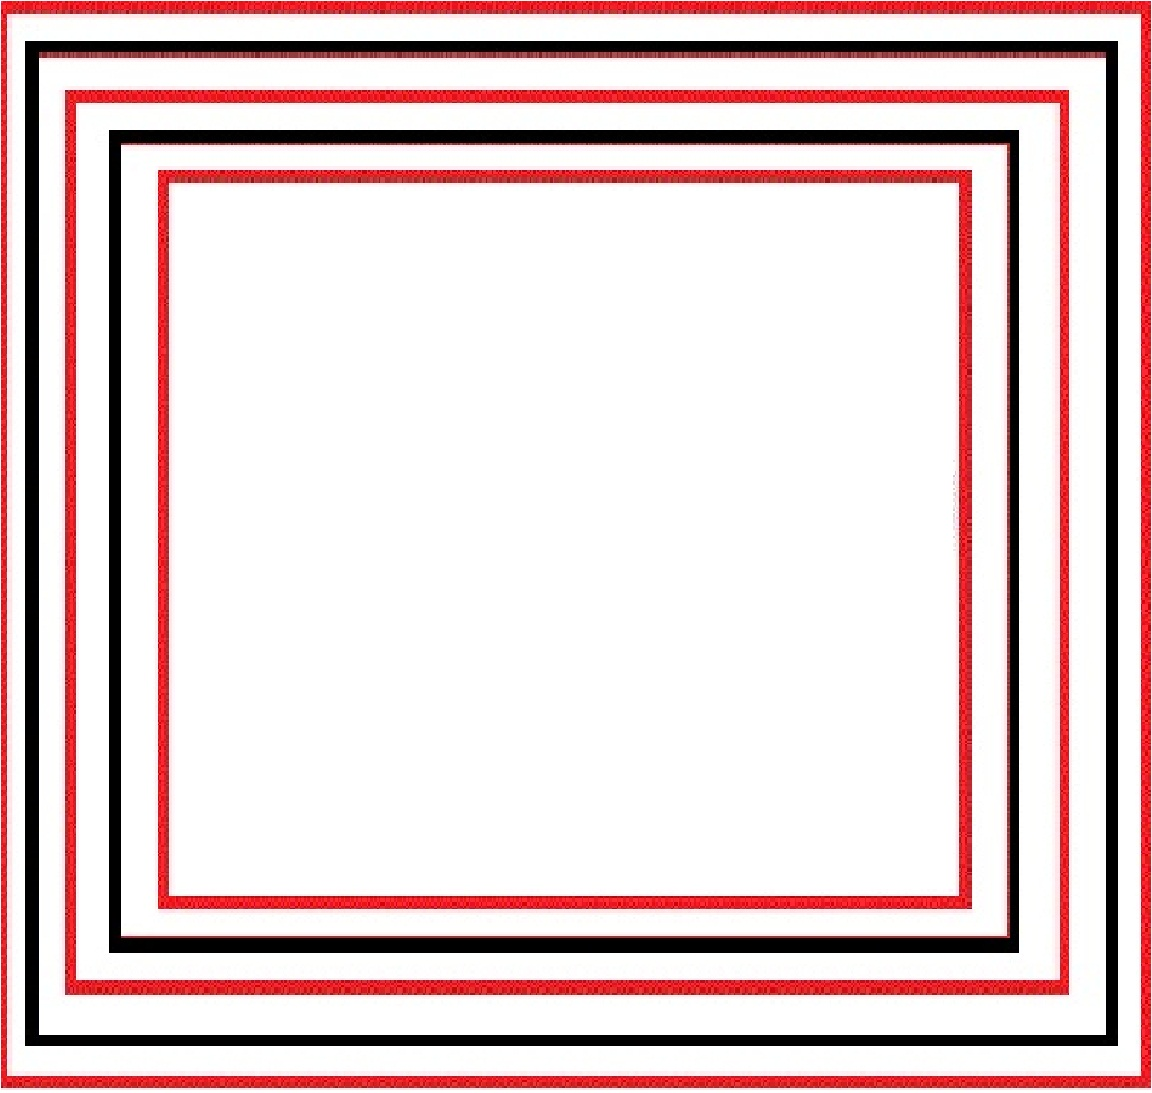 Printable Colorful Red Black Frame Page Borders Design HD ... image free stock